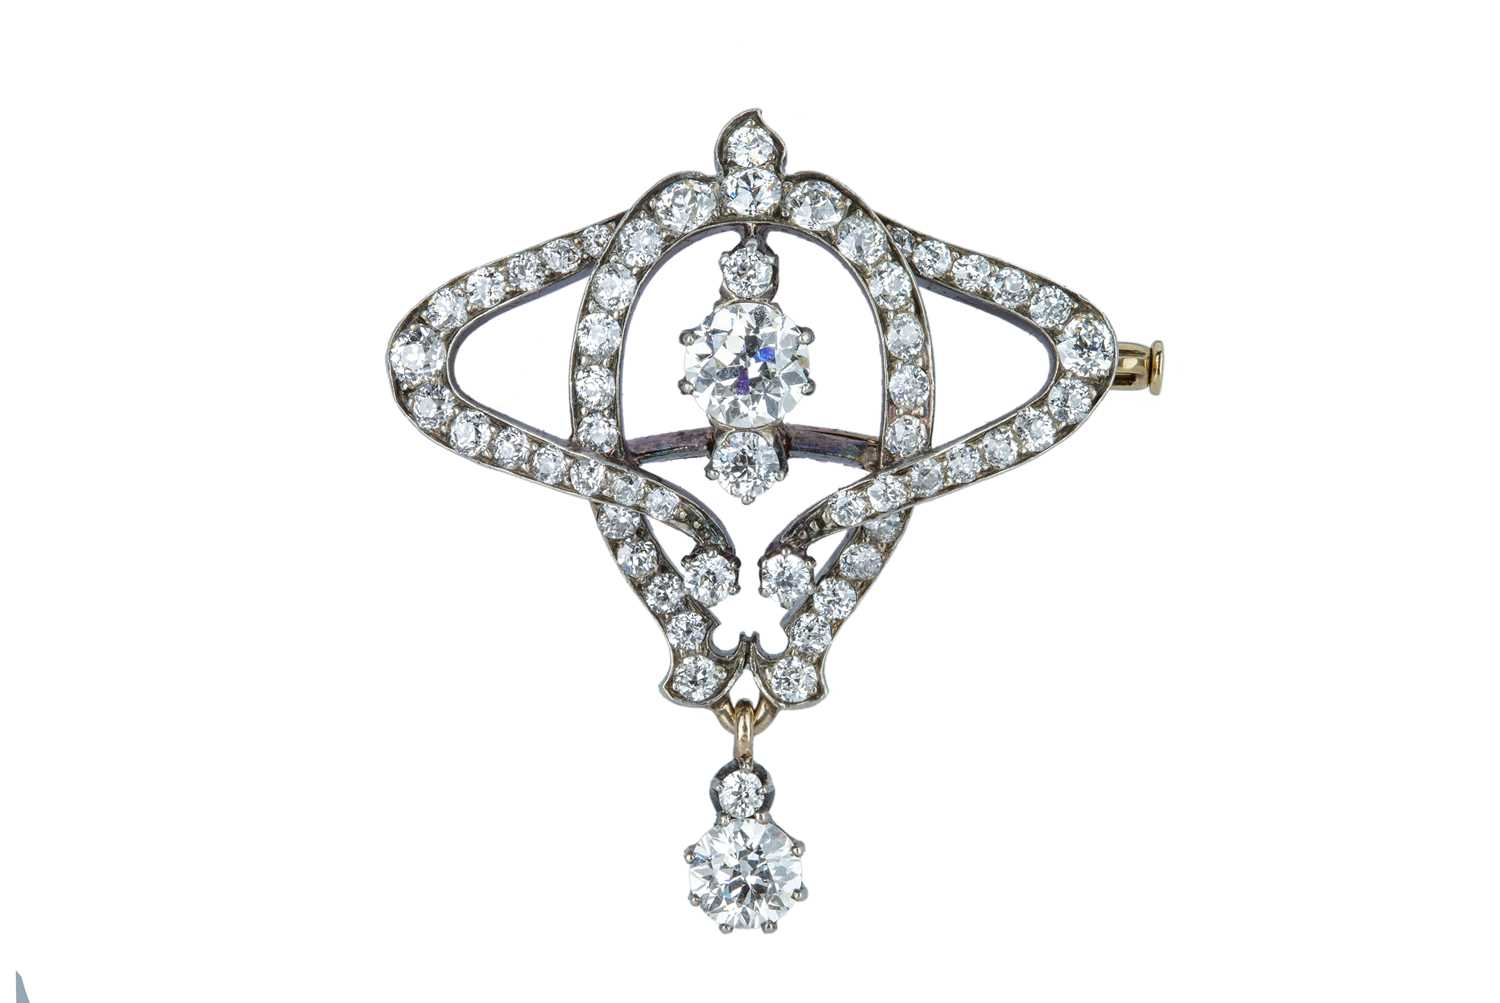 Lot 50 - A late 19th century French diamond scroll brooch.